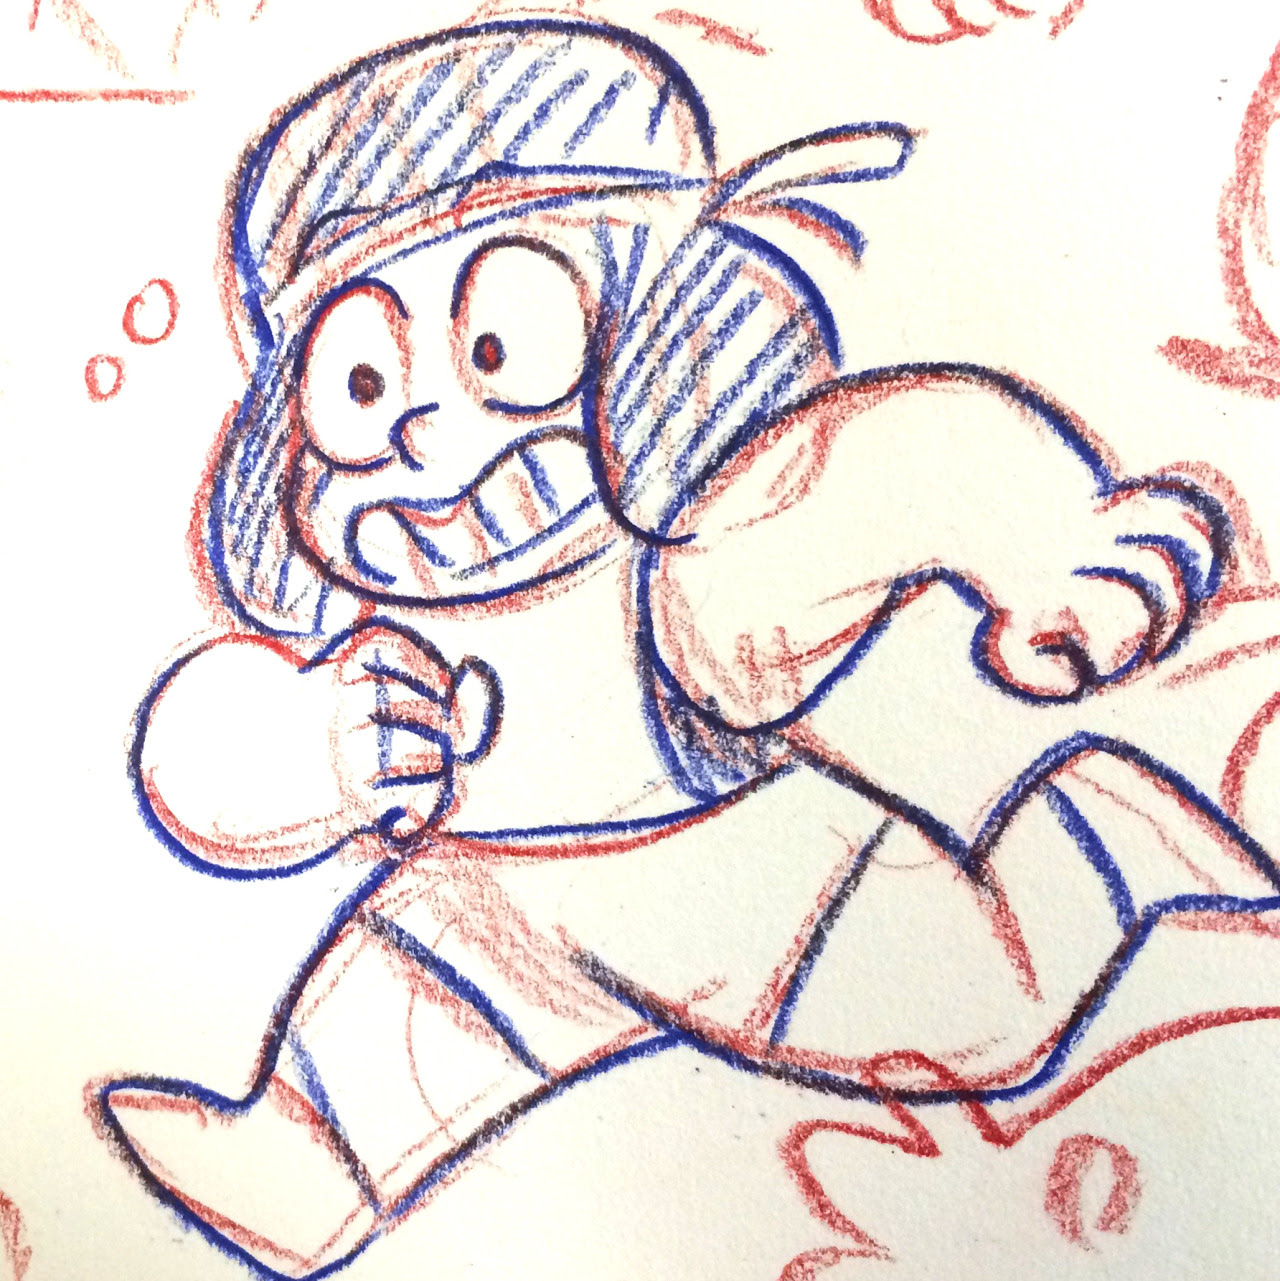 I Ruby-bombed my sketchbook today